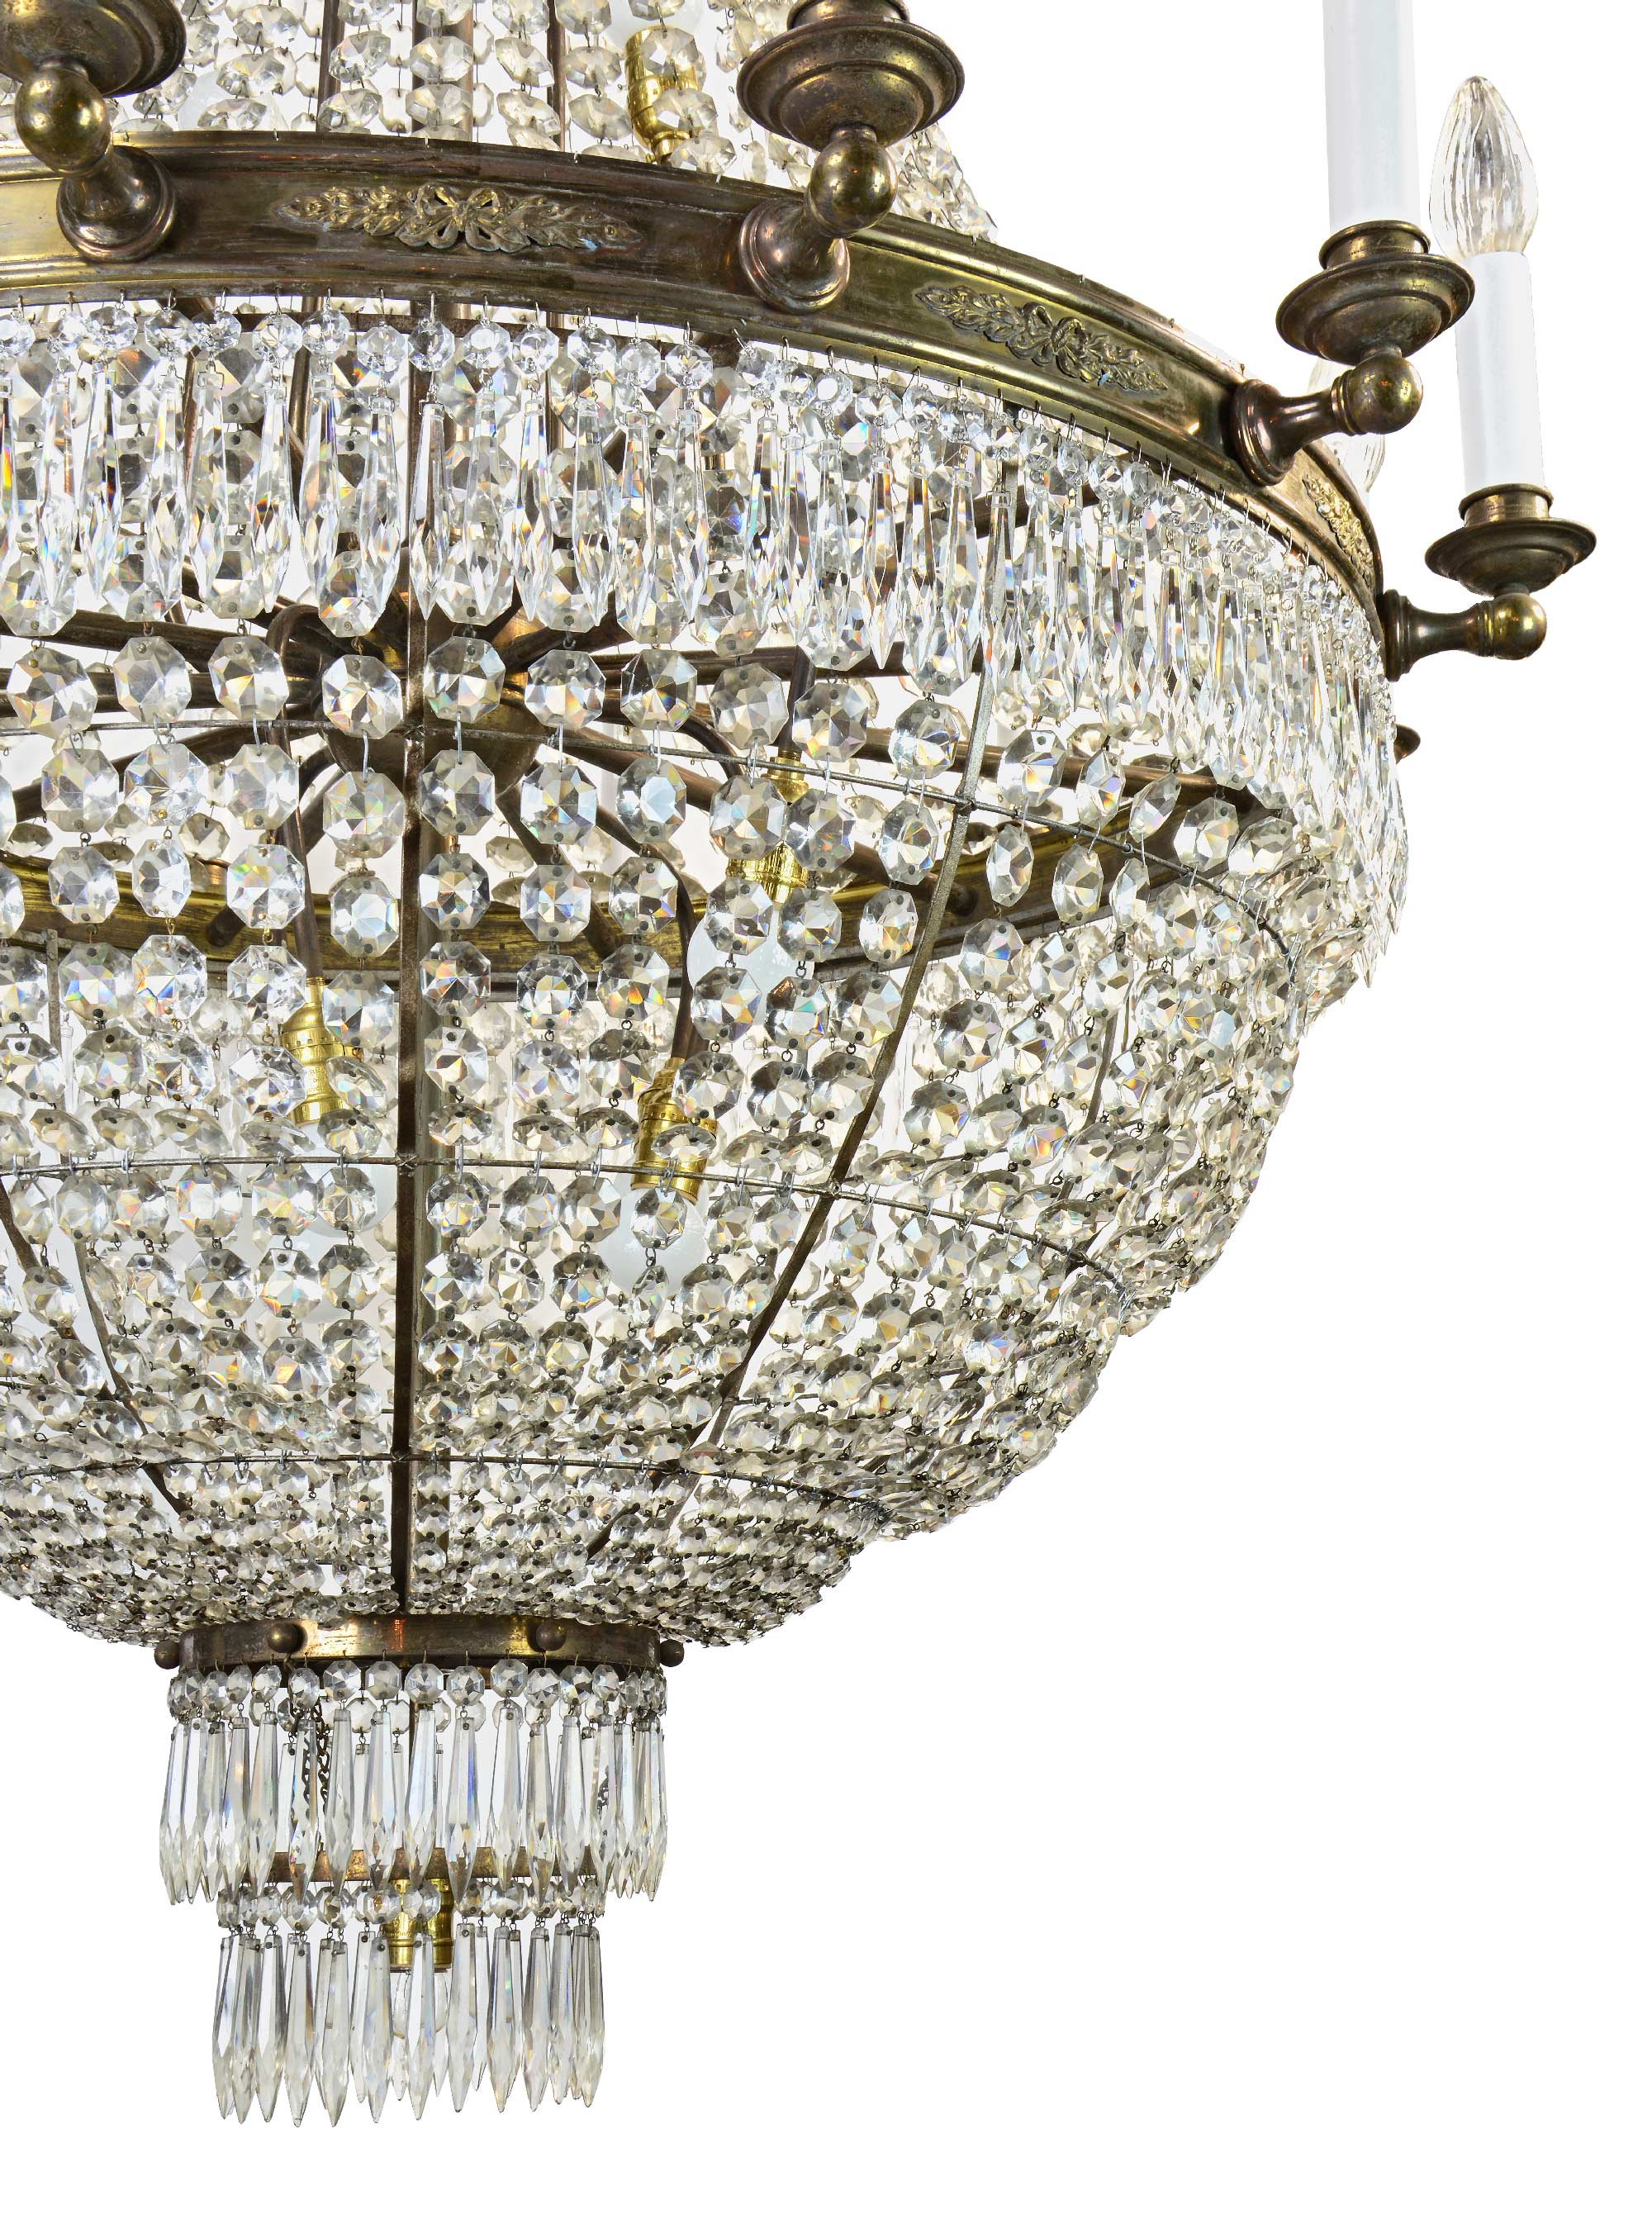 46798-crystal-chandelier-bottom.jpg